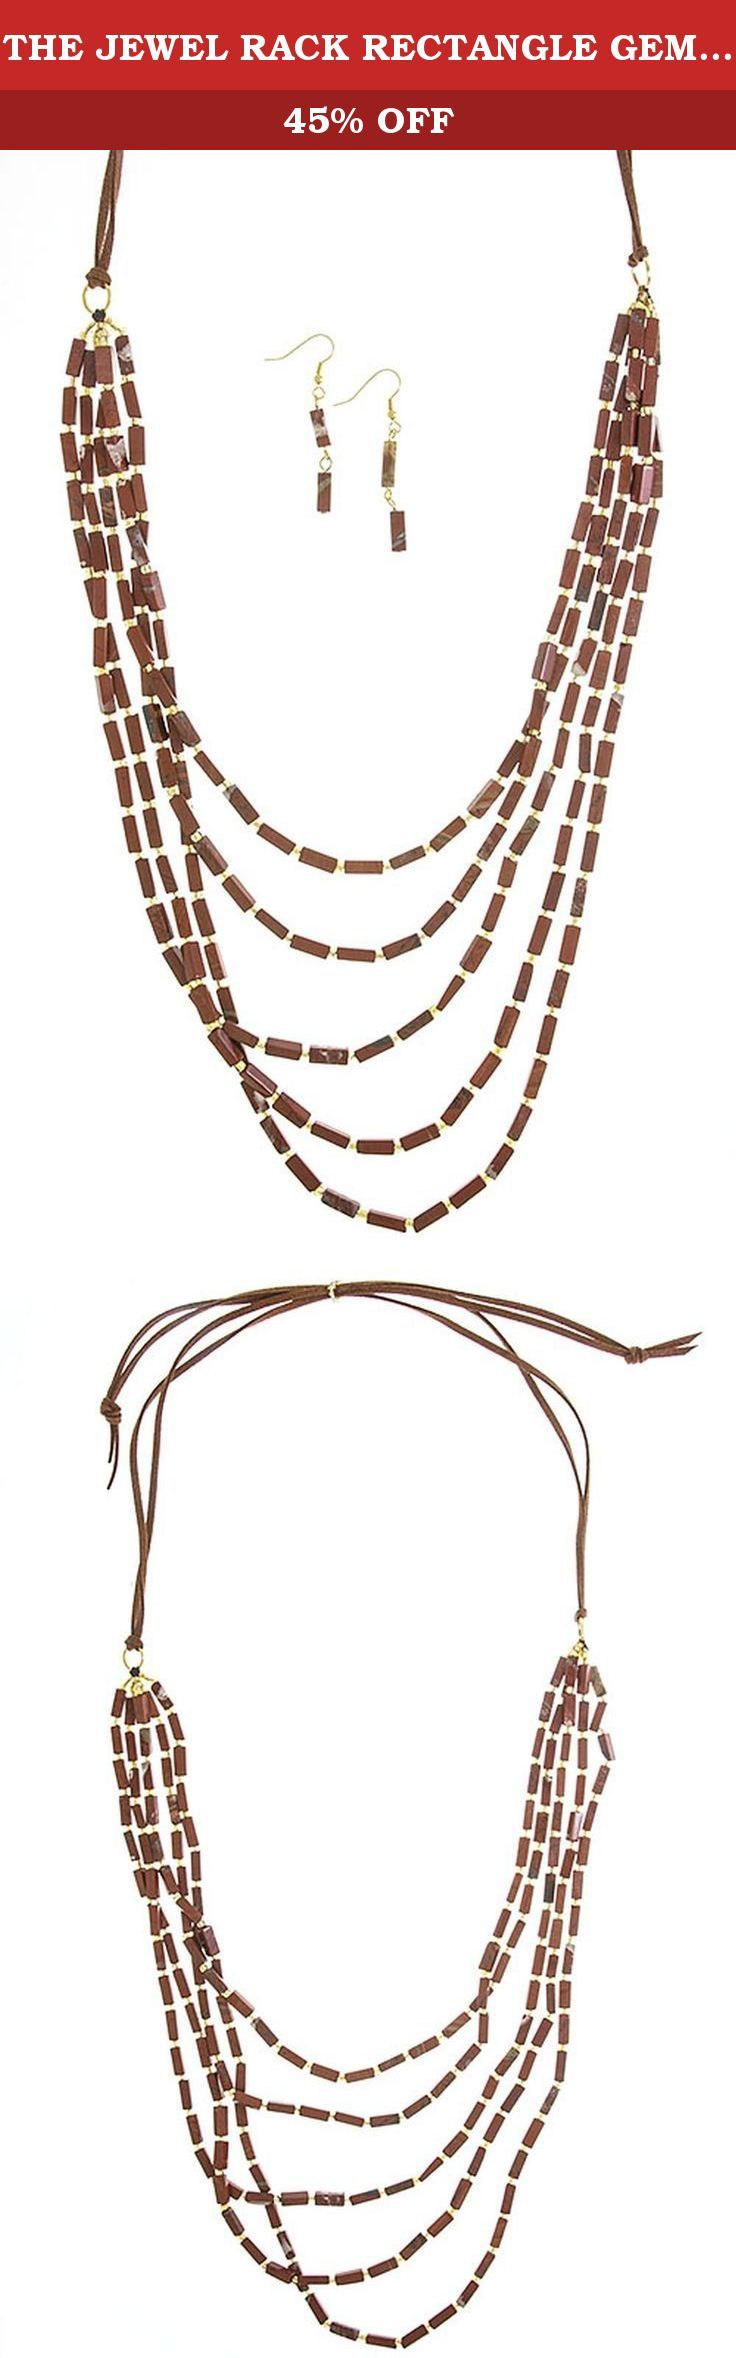 THE JEWEL RACK RECTANGLE GEM TIERED LONG NECKLACE SET. FASHION DESTINATION PRESENTS THE JEWEL RACK RECTANGLE GEM TIERED LONG NECKLACE SET. Buy brand-name Fashion Jewelry for everyday discount prices with Fashion Destination! Everyday LOW shipping *. Read product reviews on Fashion Necklaces, Fashion Bracelets, Fashion Earrings & more. Shop the Fashion Destination store for a wide selection of rings, bracelets, necklaces, earrings and diamond jewelry. Whether you are searching for men's...